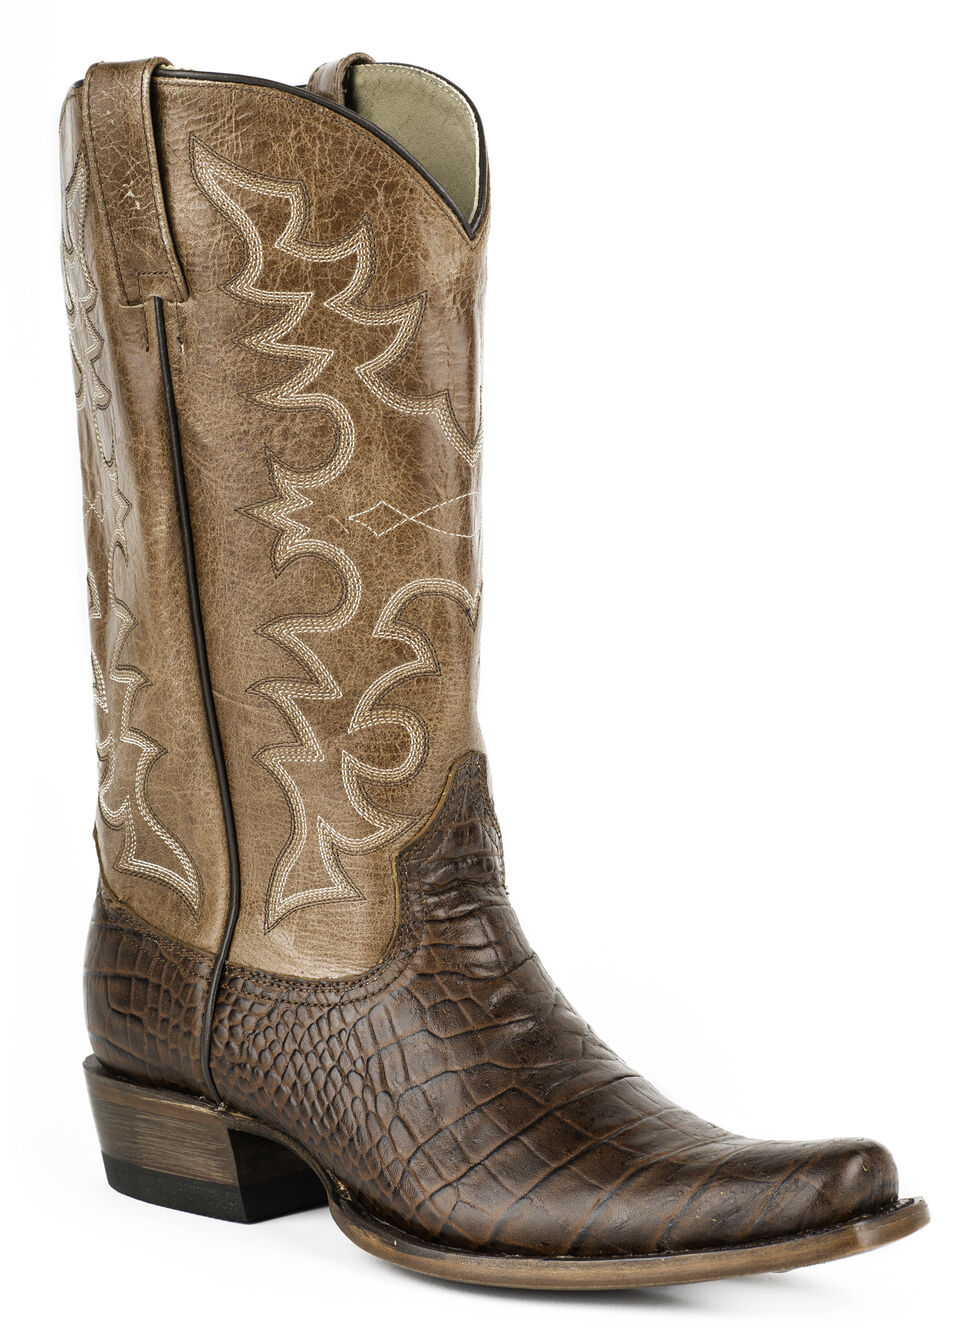 Roper Croc Print Cowboy Boots - Wide Square Toe, Brown, hi-res